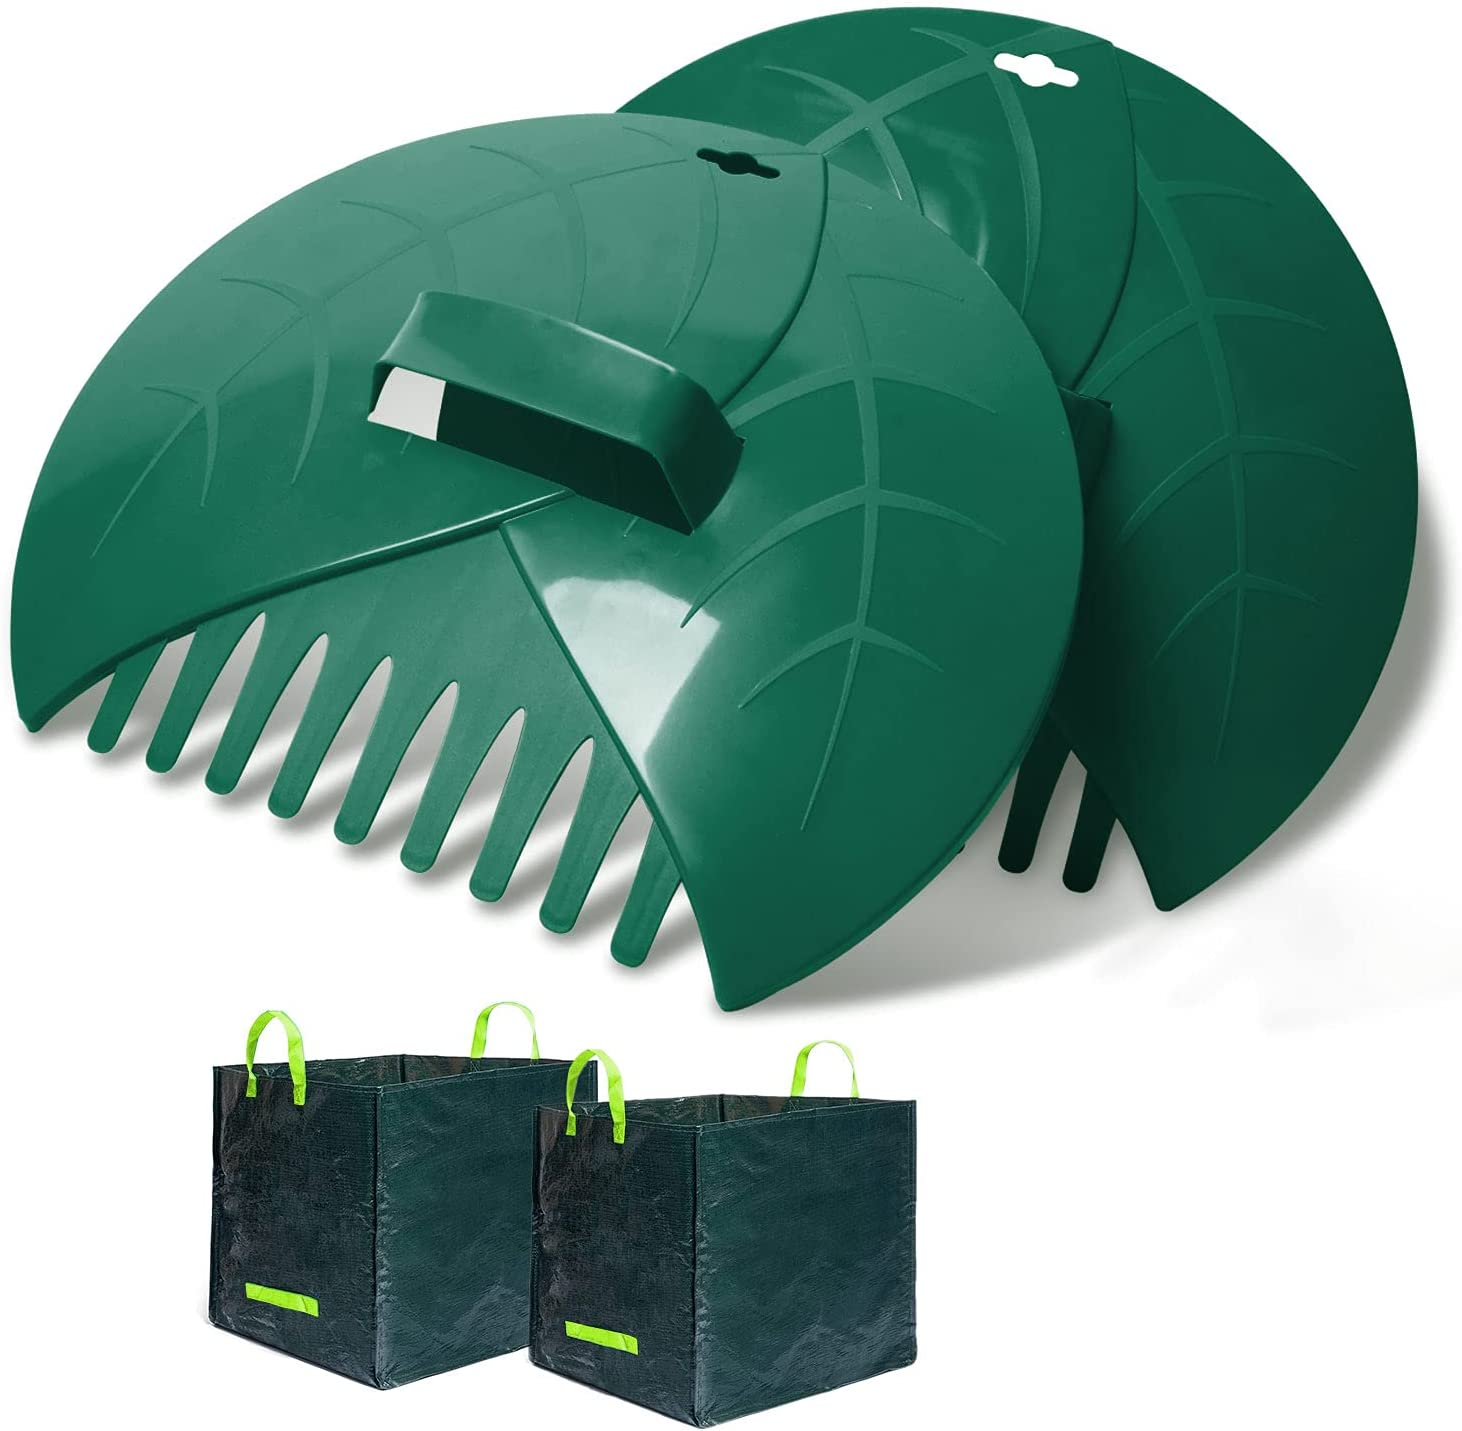 WINSLOW & ROSS Leaf Scoops Hand Rakes with 2 Trash Bag, Large Durable Ergonomic Leaf Scoops for Picking up Leaves, Grass Clippings and Lawn Debris,Green 2 pcs